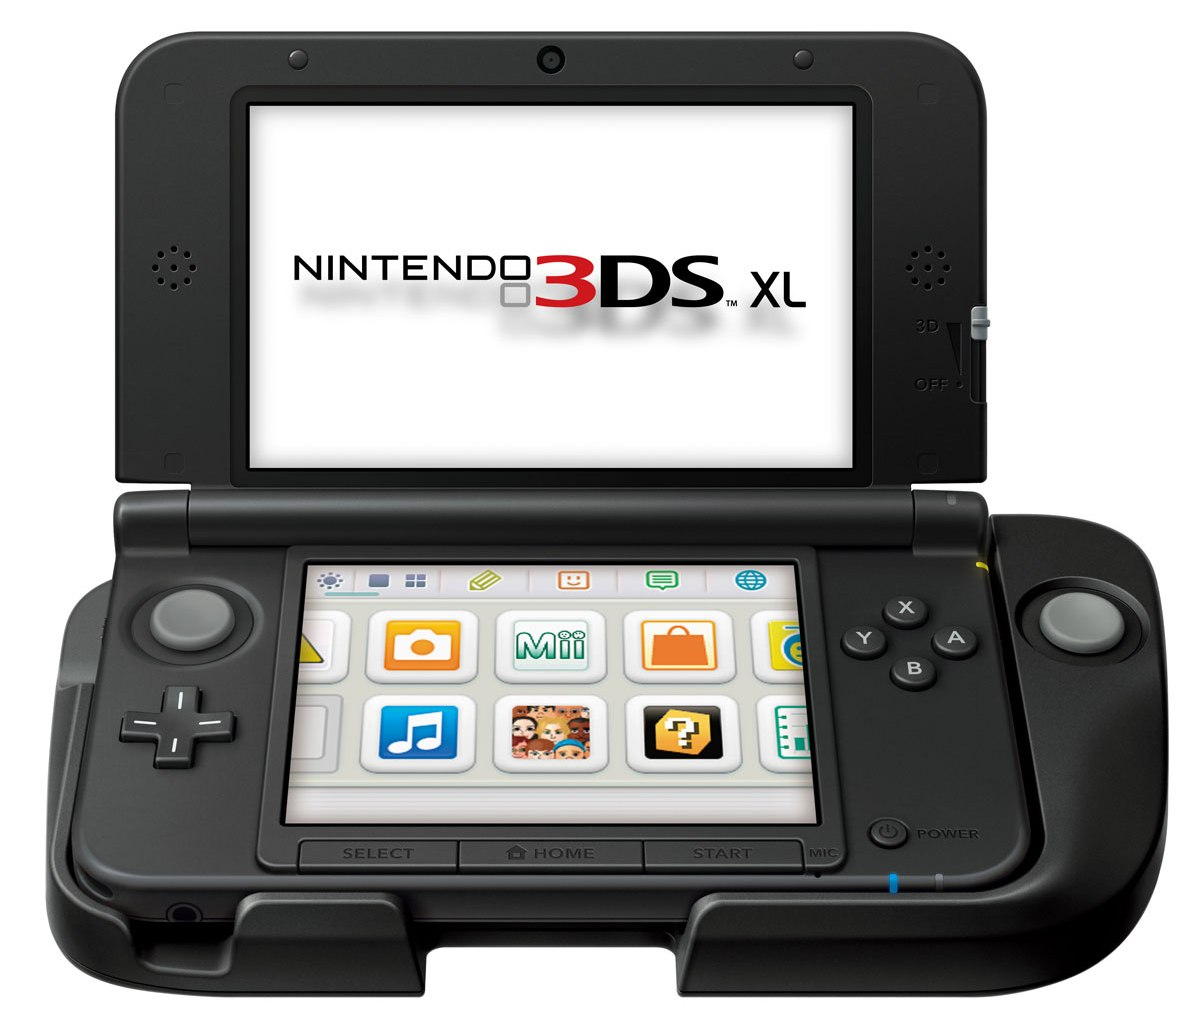 Nintendo 3DS XL Circle Pad Pro Available On North American Store, Ships April 19th | My Nintendo ...